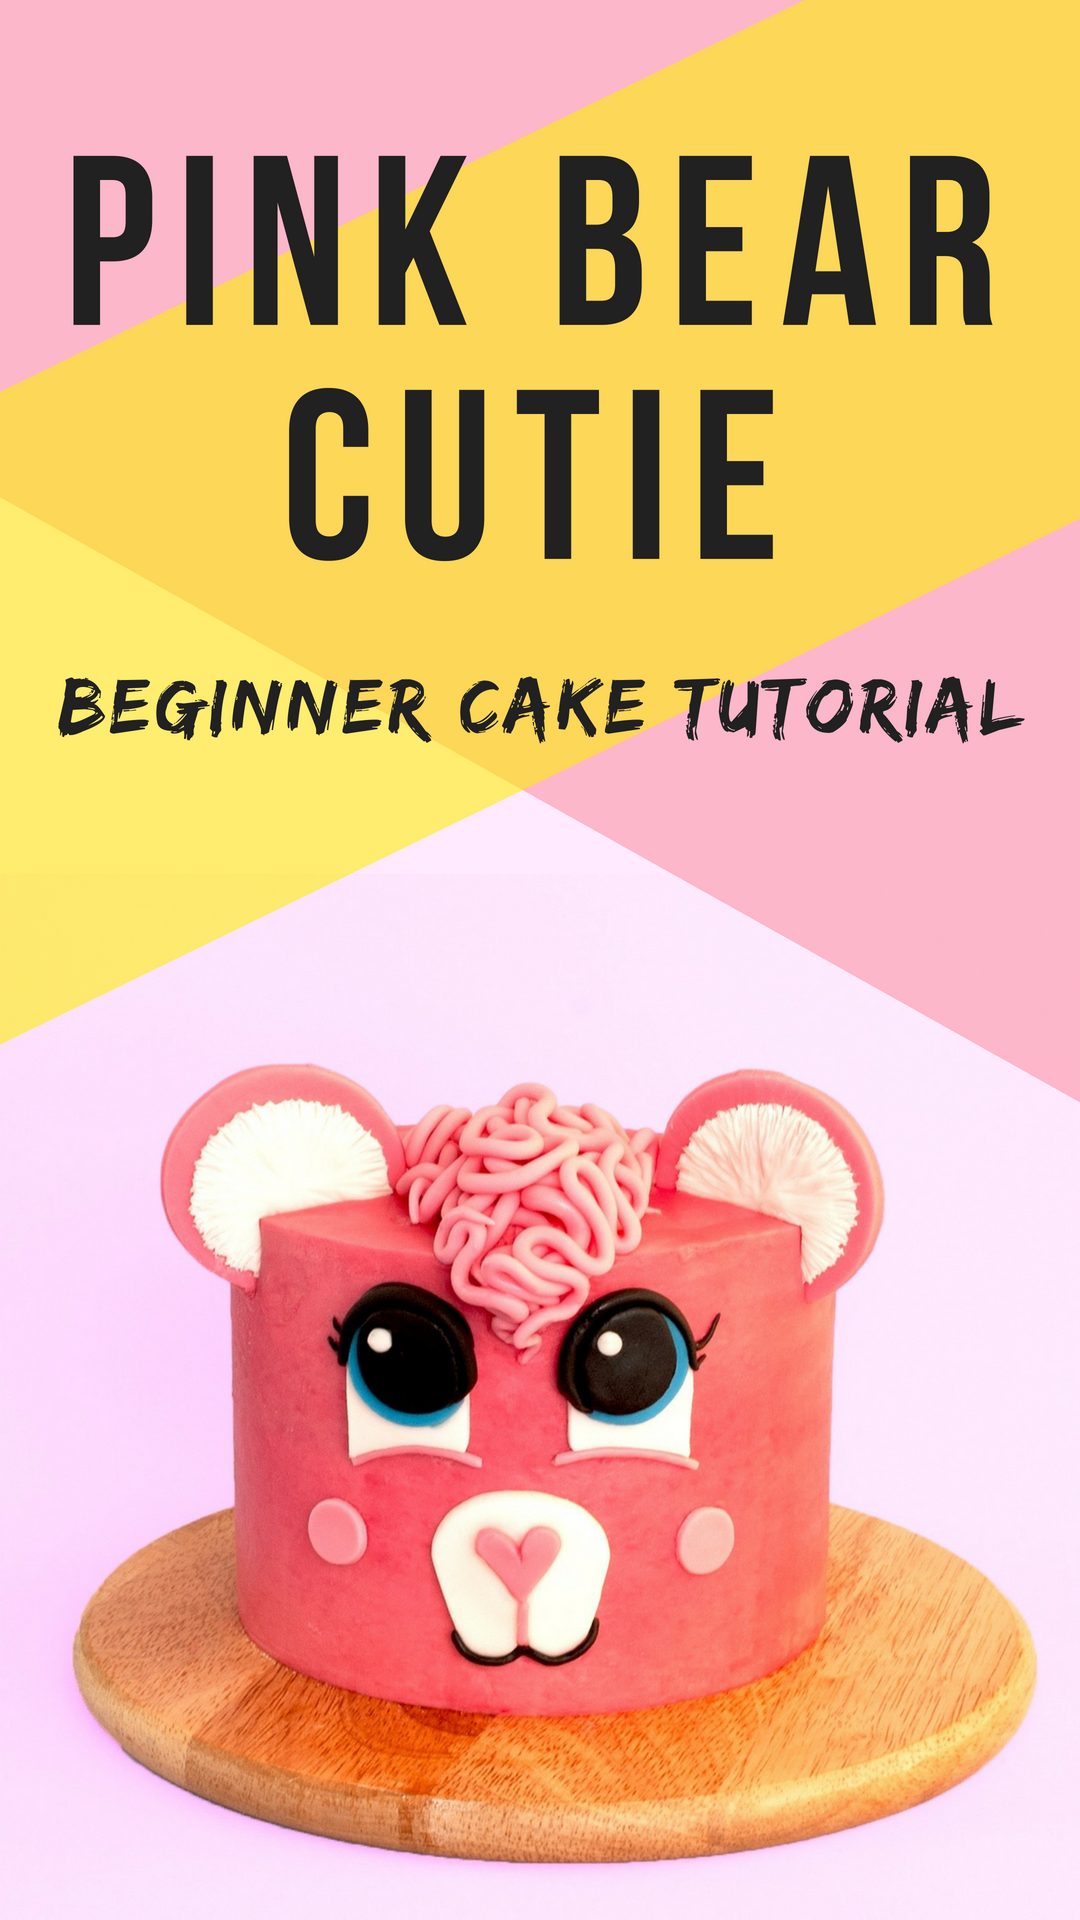 Super cute pink bear cake tutorial for beginners.png